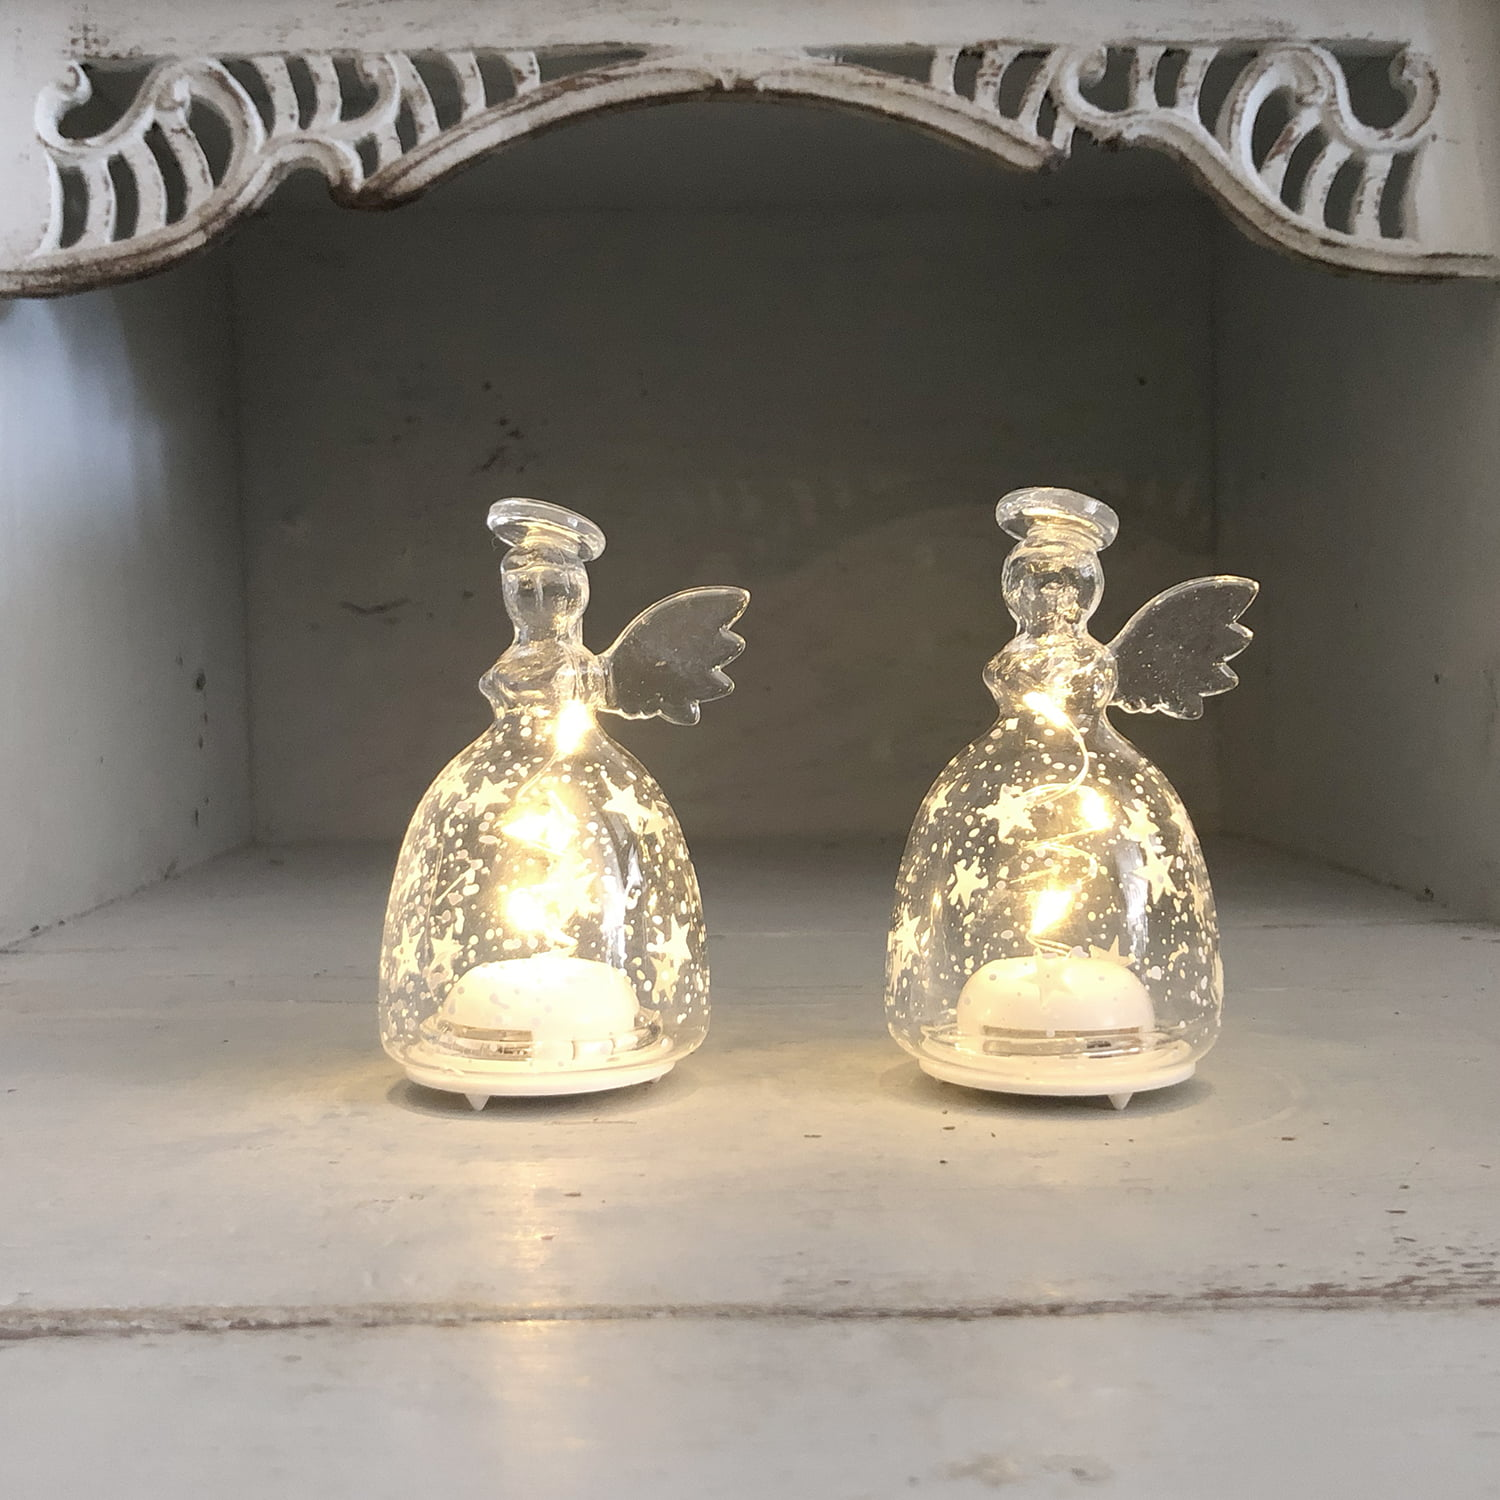 Pair of Inge Romantic Small Glass Angels